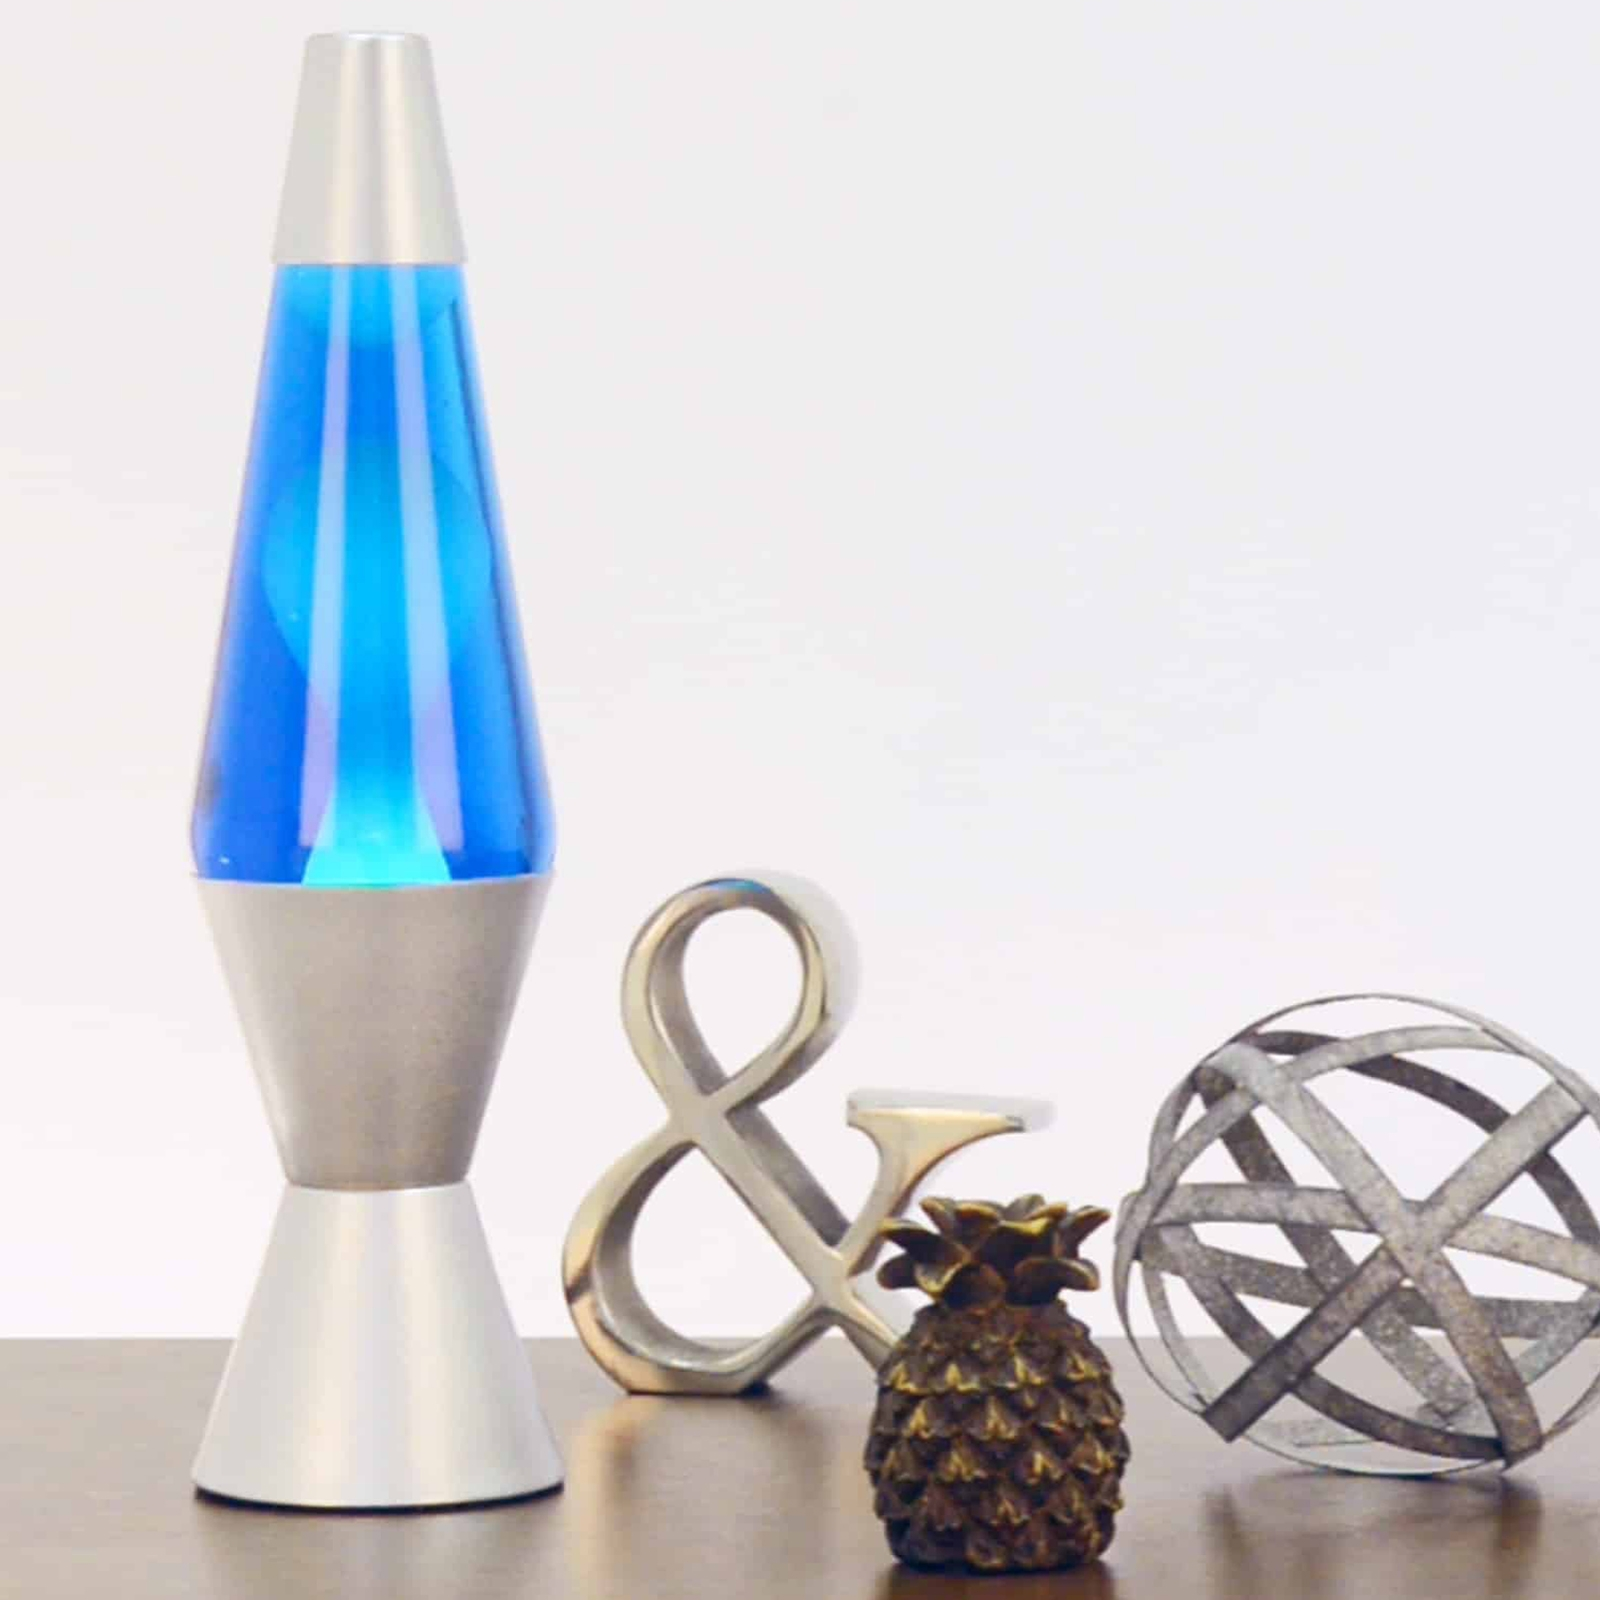 145 Lava Brand Lava Lamp White Blue